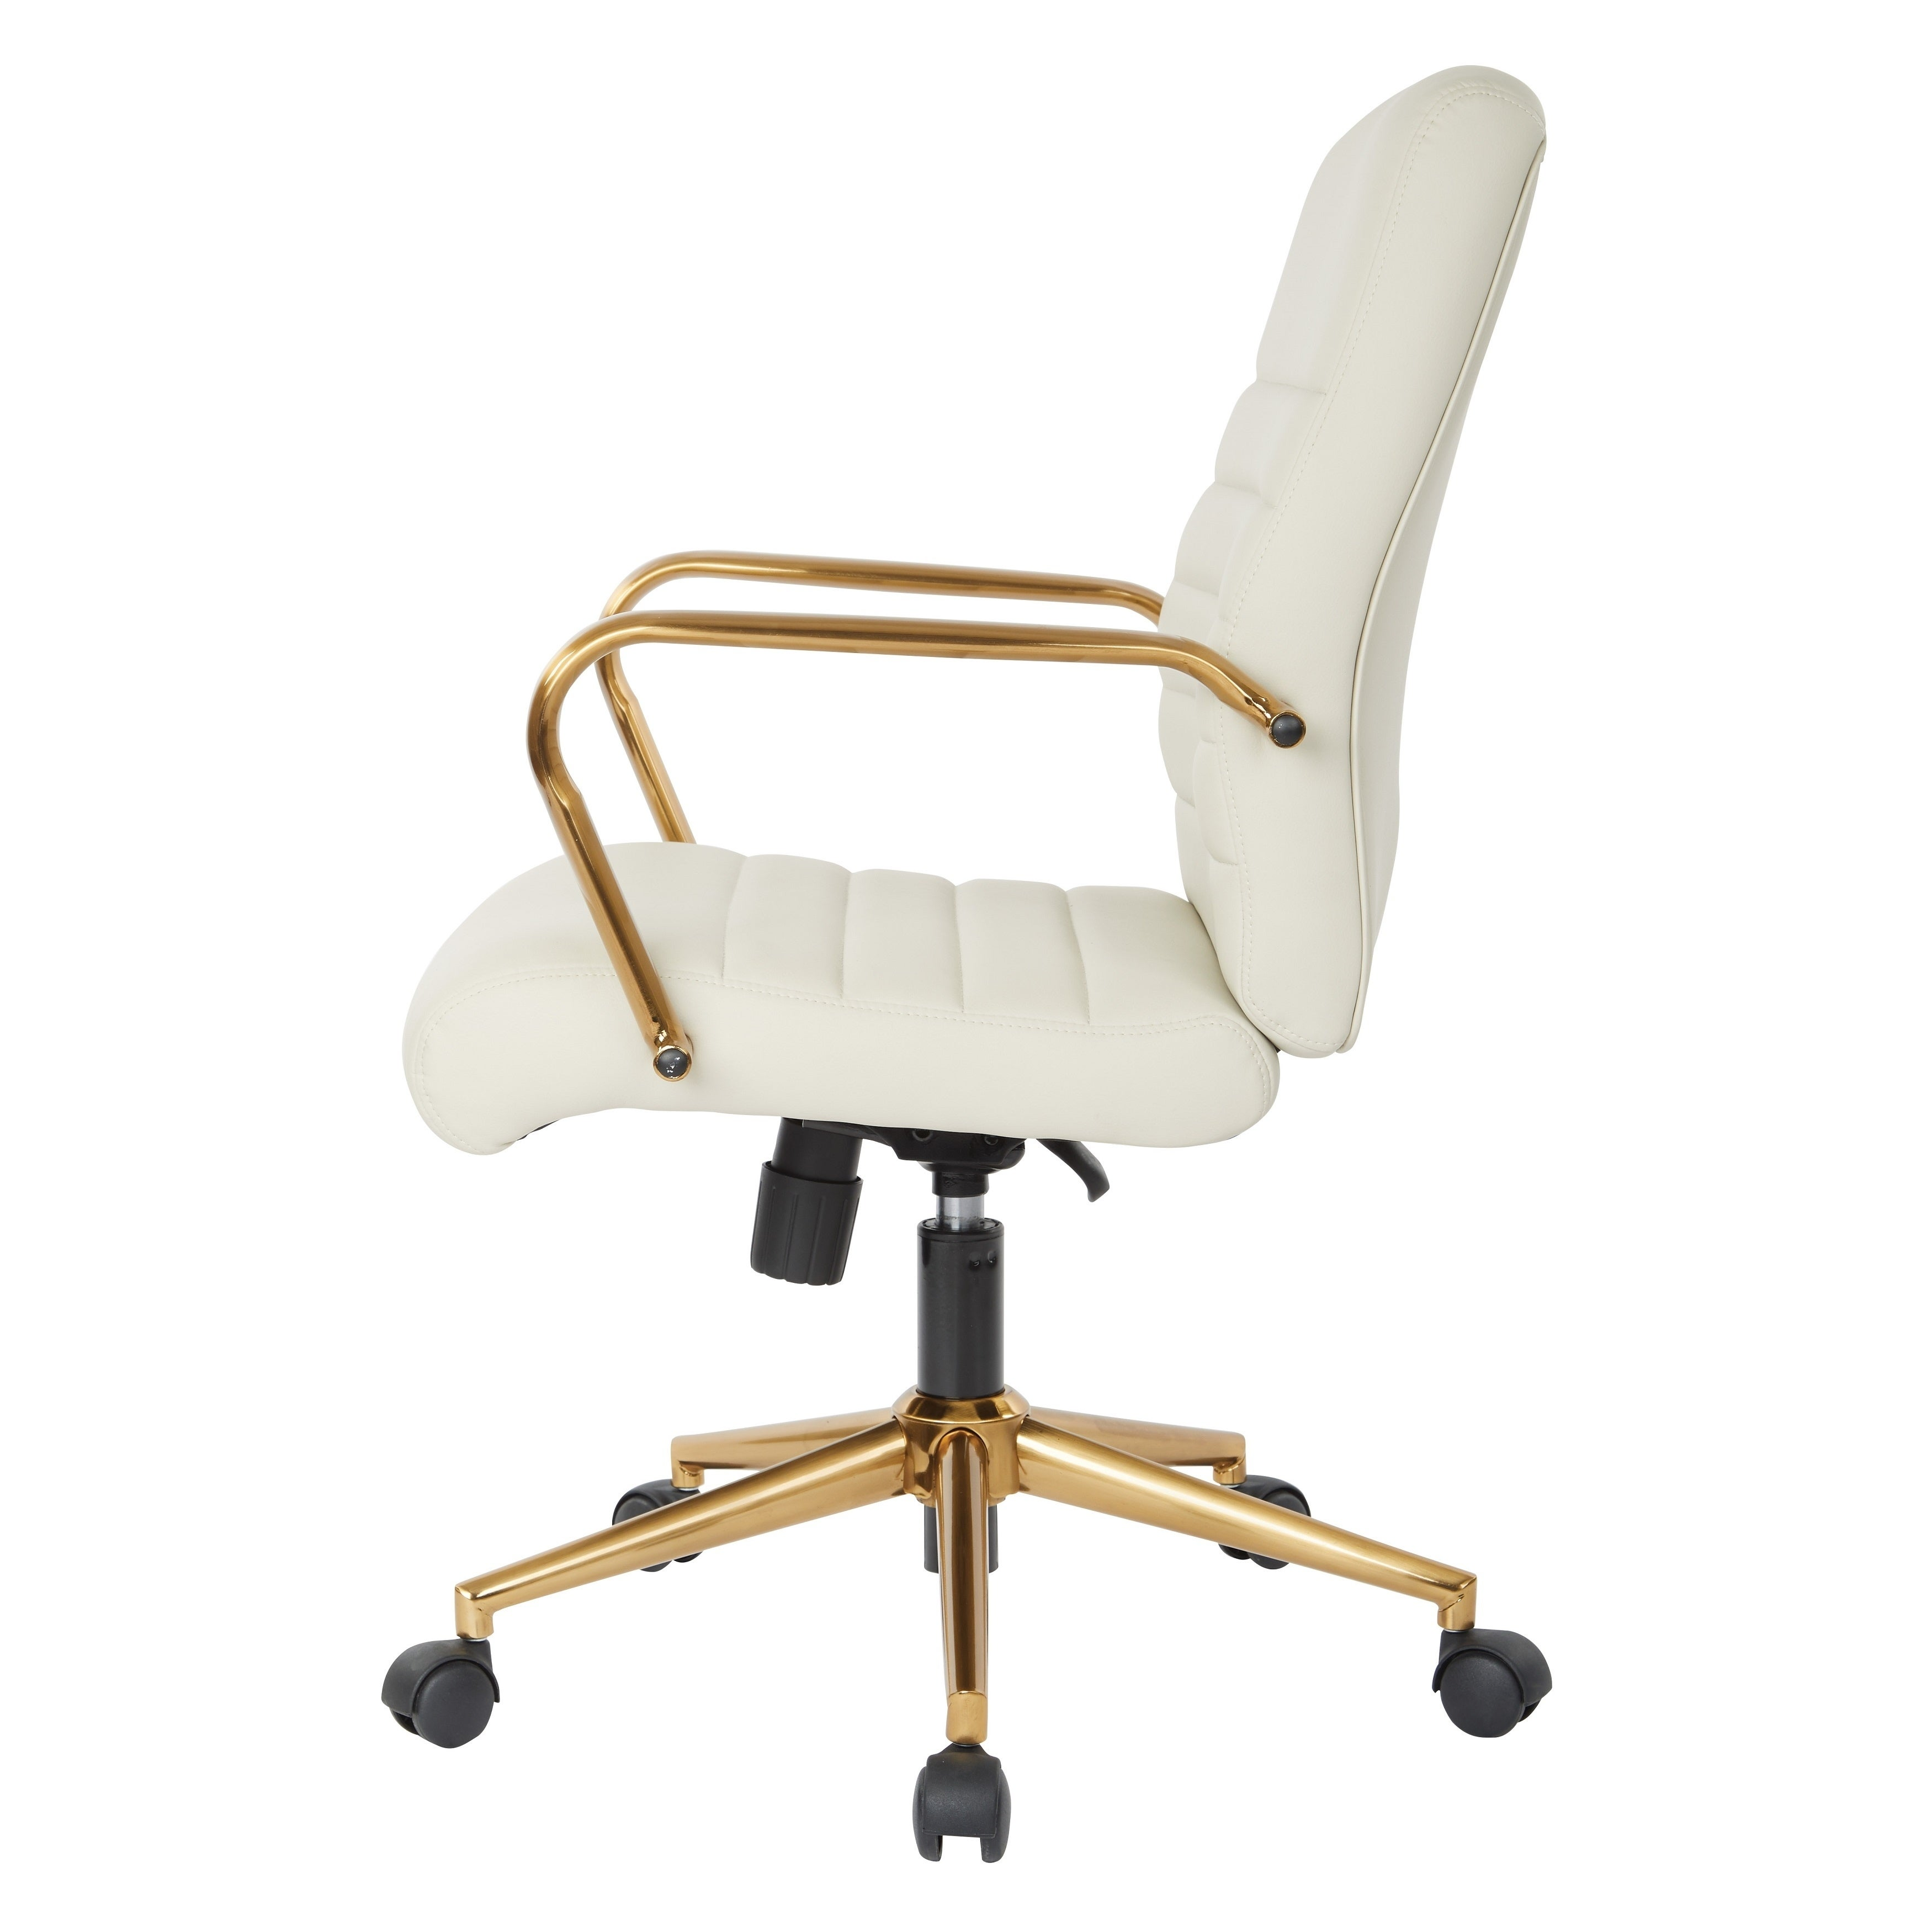 737eefe7c Shop OSP Home Furnishings Baldwin Mid-Back Faux Leather Chair with Gold  Finish Arms and Base - Free Shipping Today - Overstock - 21932920